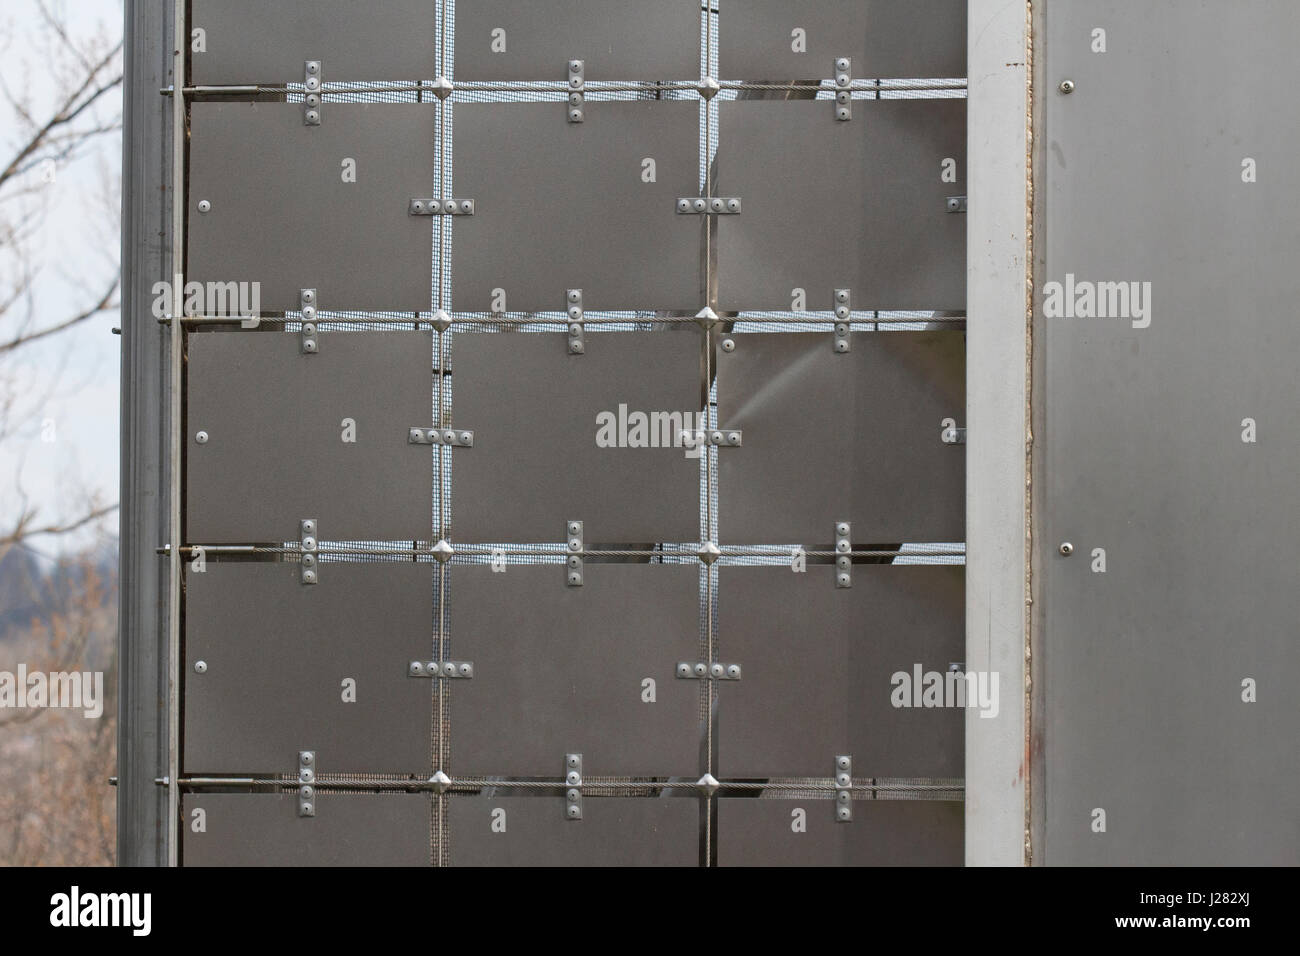 Metal plates joined together with wire and fasteners. Public art ...